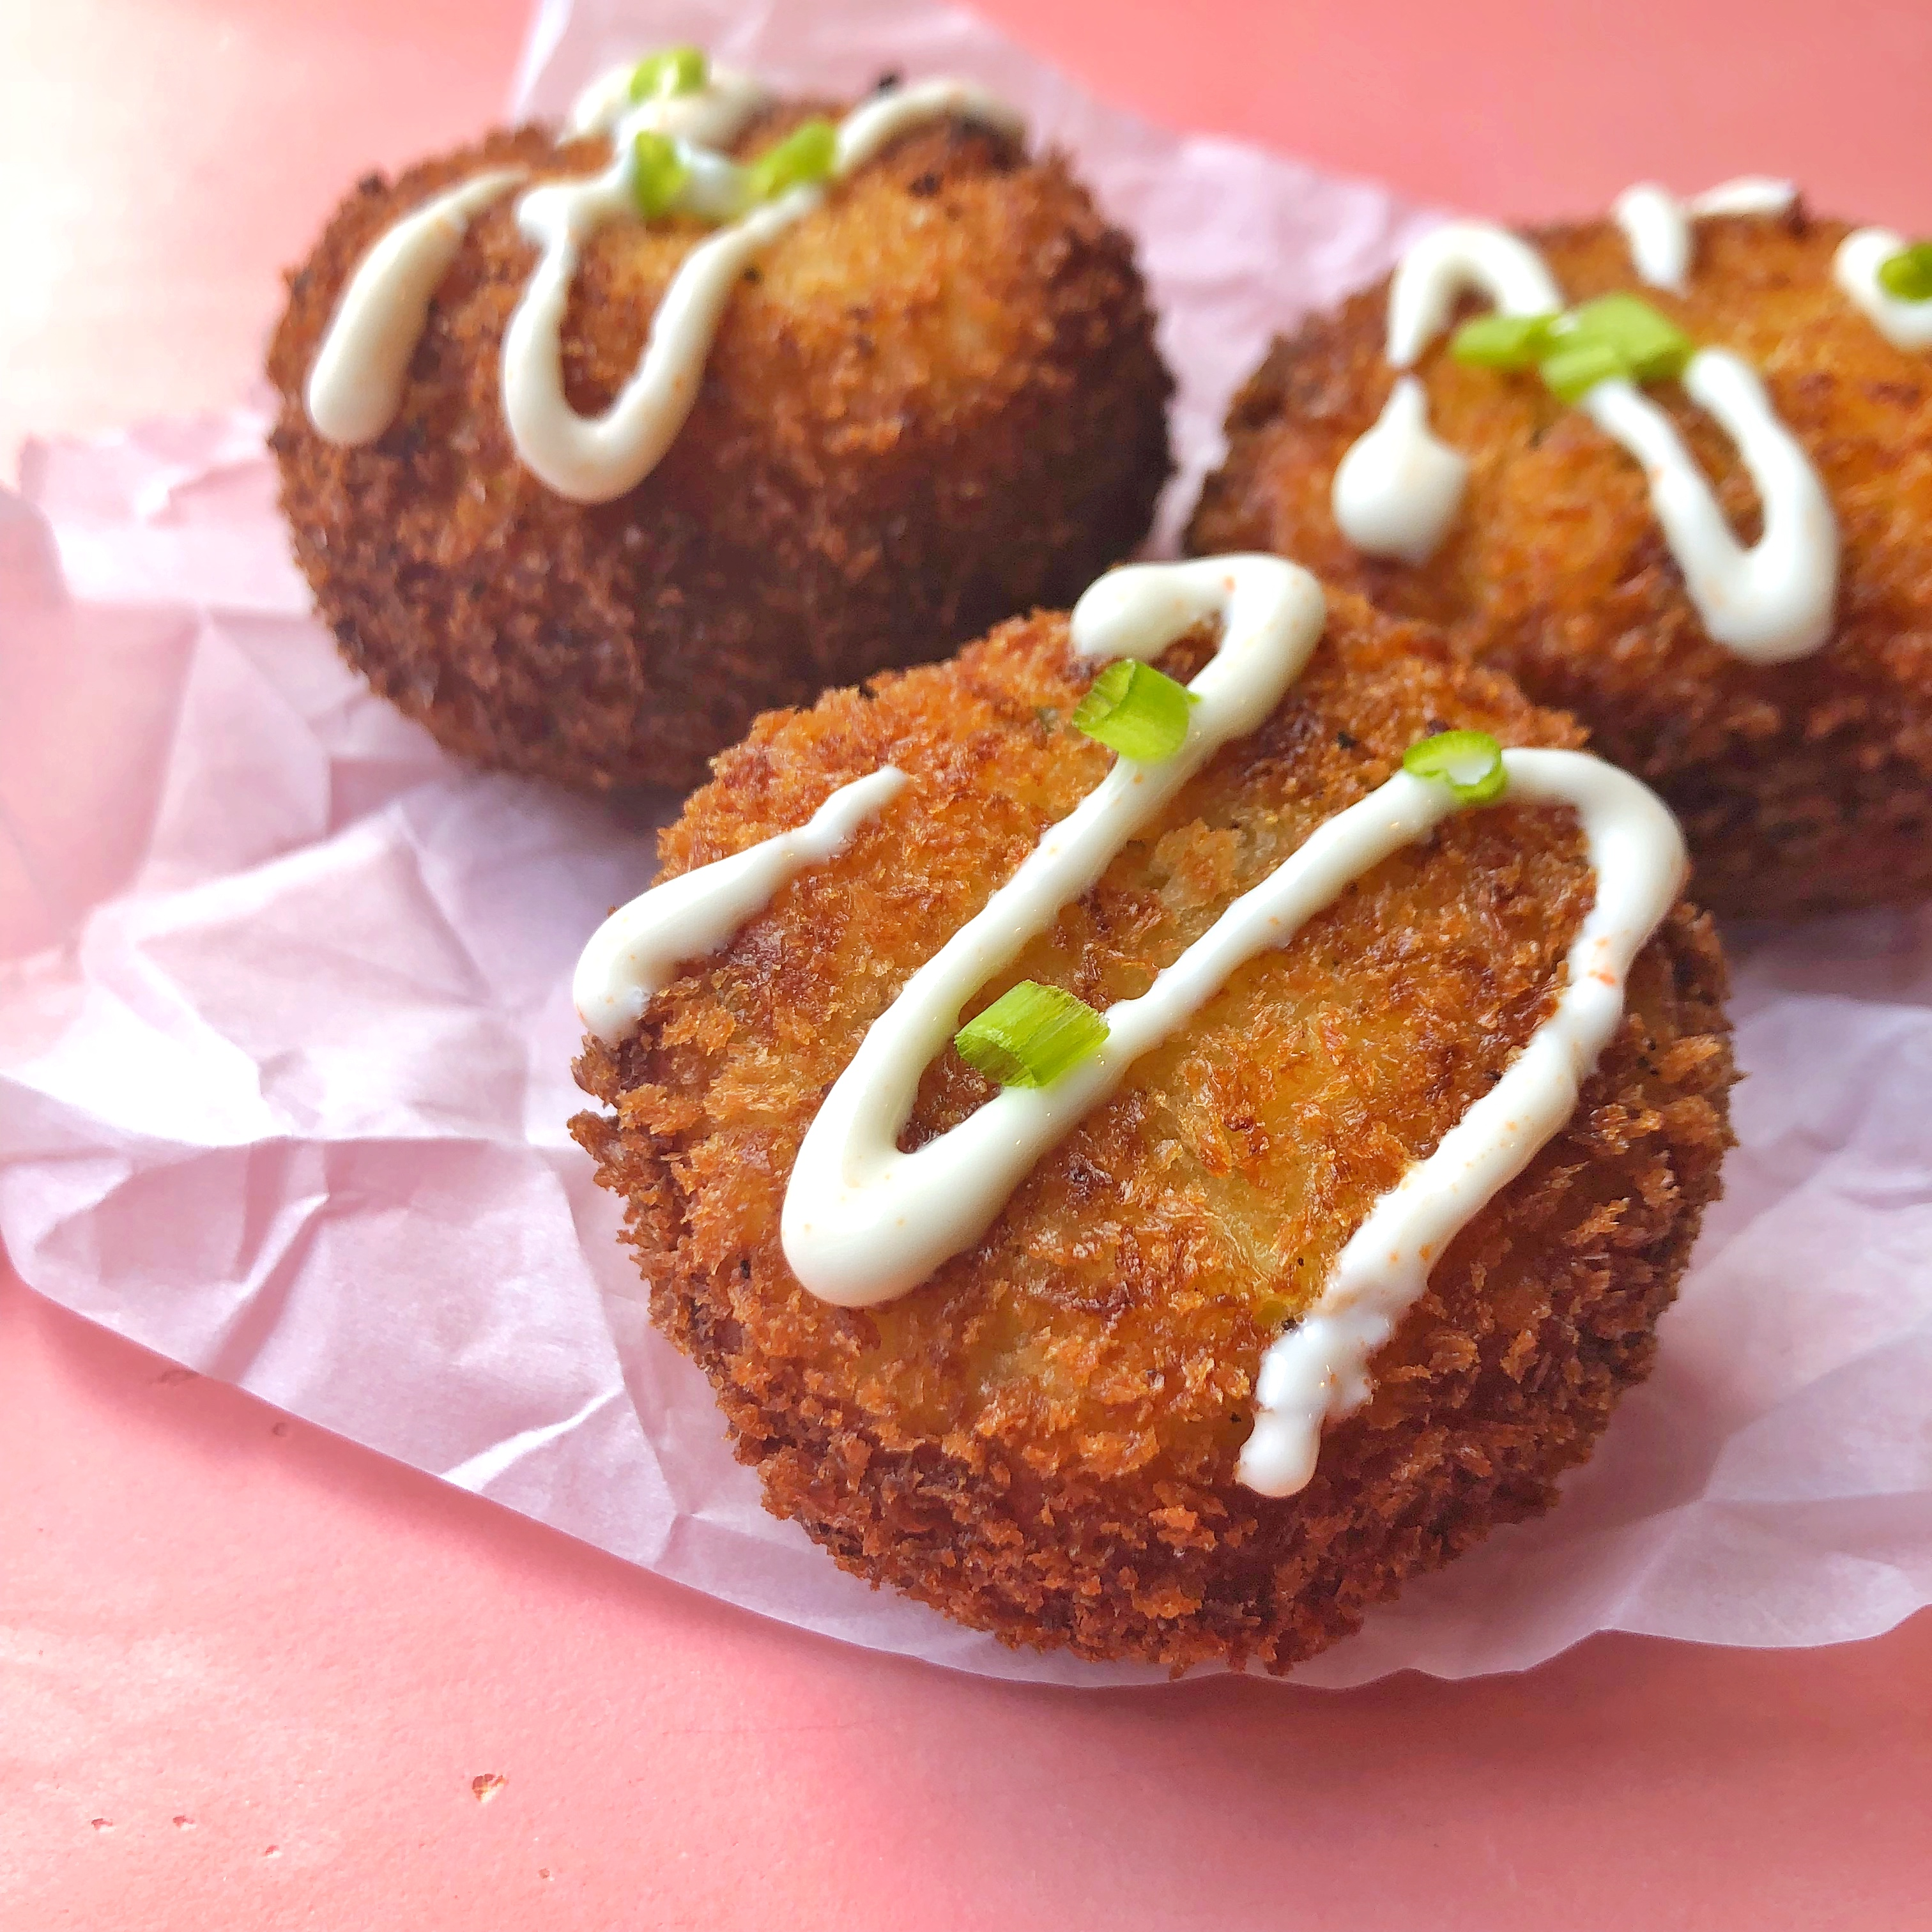 Loaded Mashed Potato Balls with Chili Honey Sour Cream